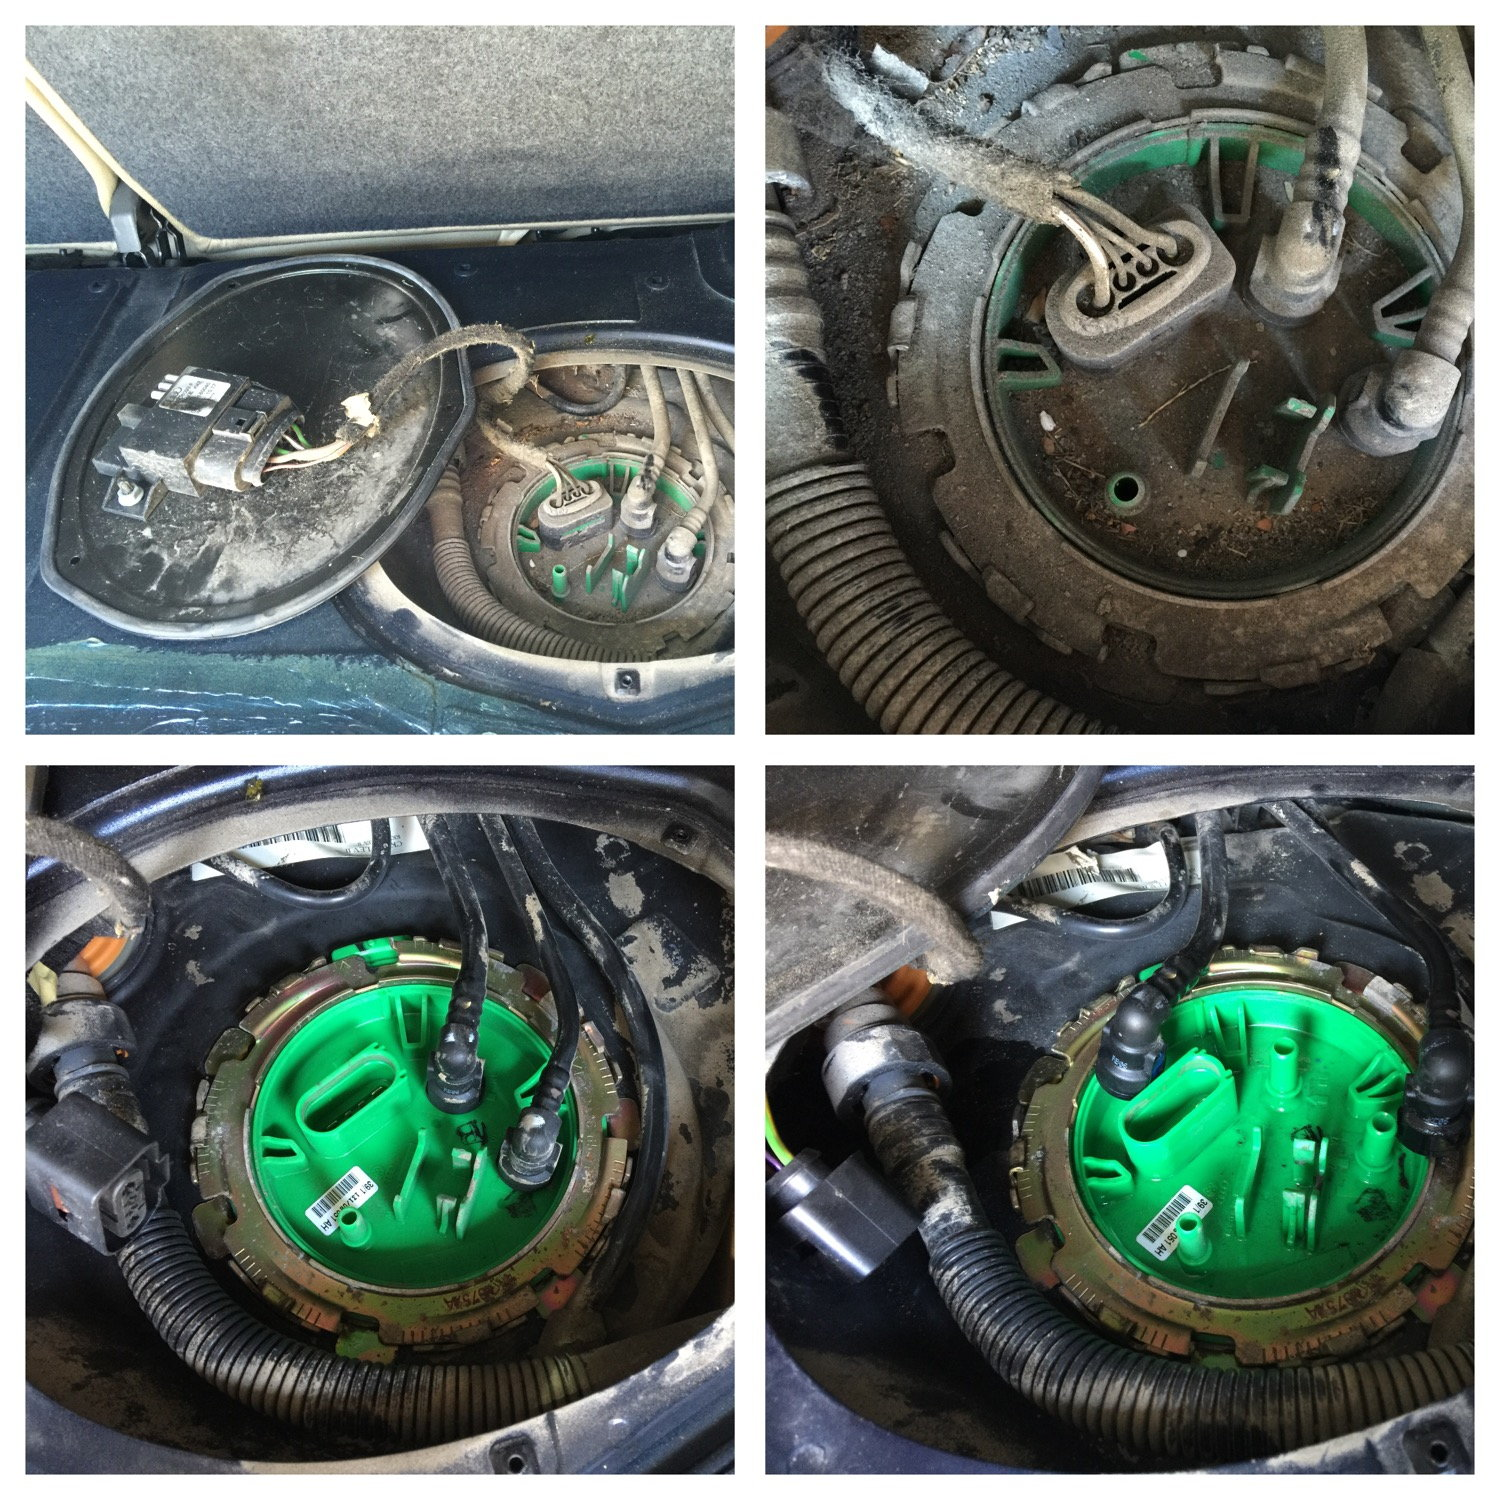 B7 NON-Quattro In-tank fuel pump replacement How-To - AudiWorld Forums